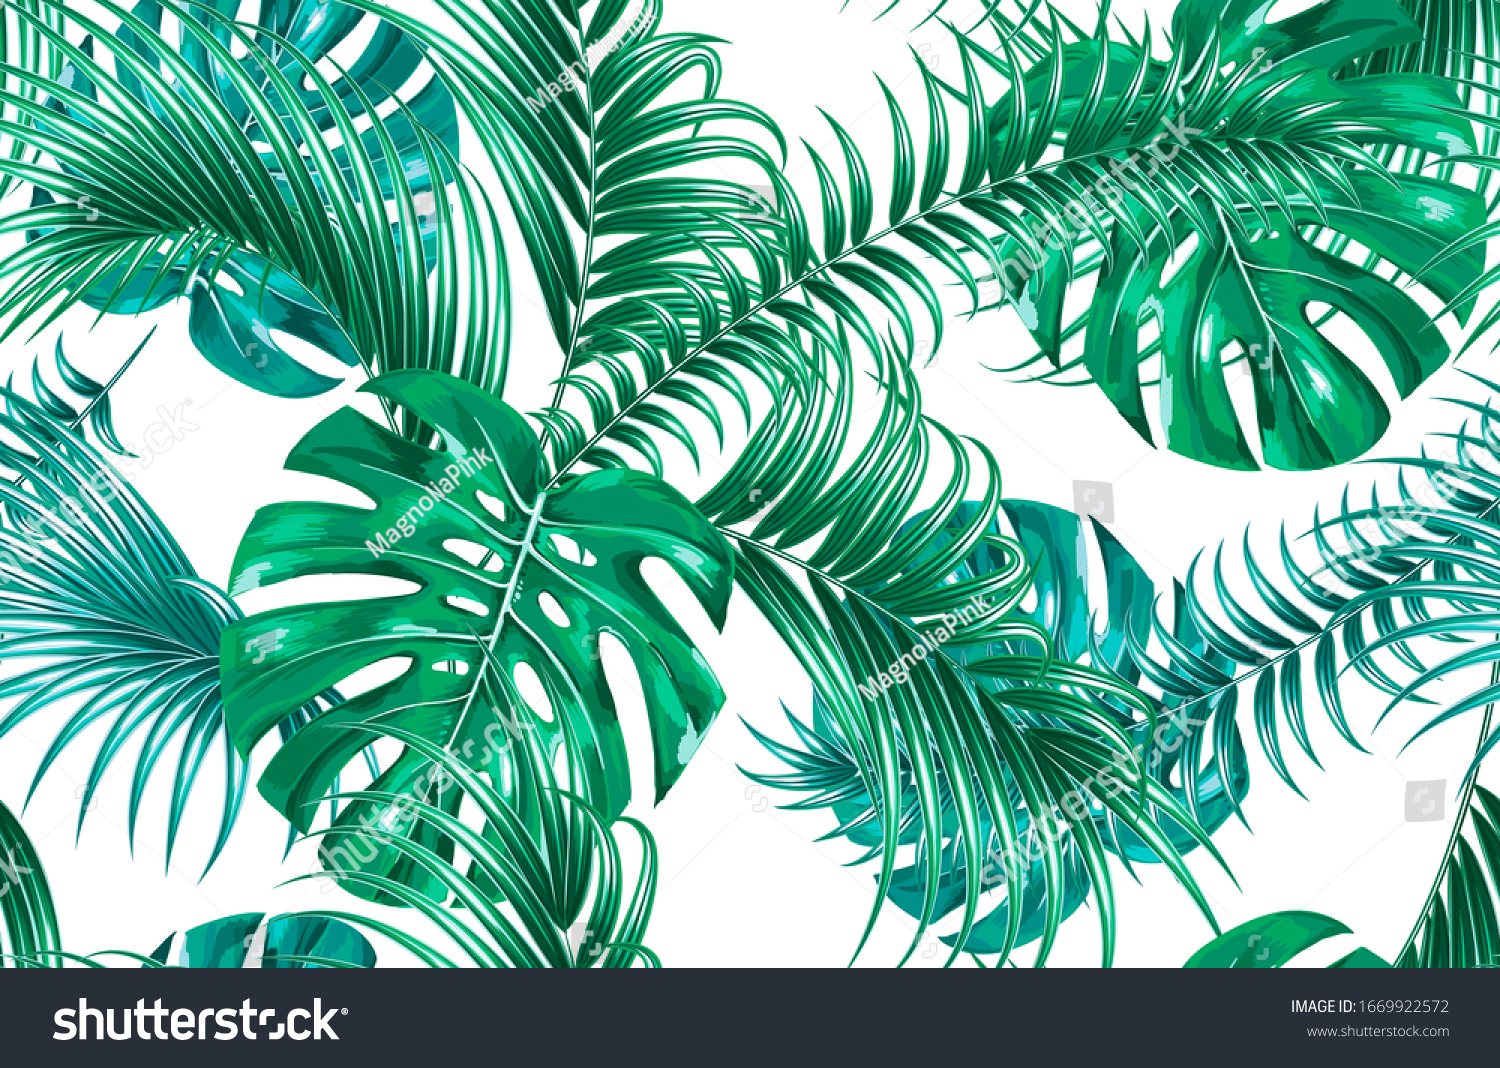 Tropical Leaves Monstera Leaf Palm Leaves Stock Vector Royalty Free 1669922572 This was added to your cart. shutterstock